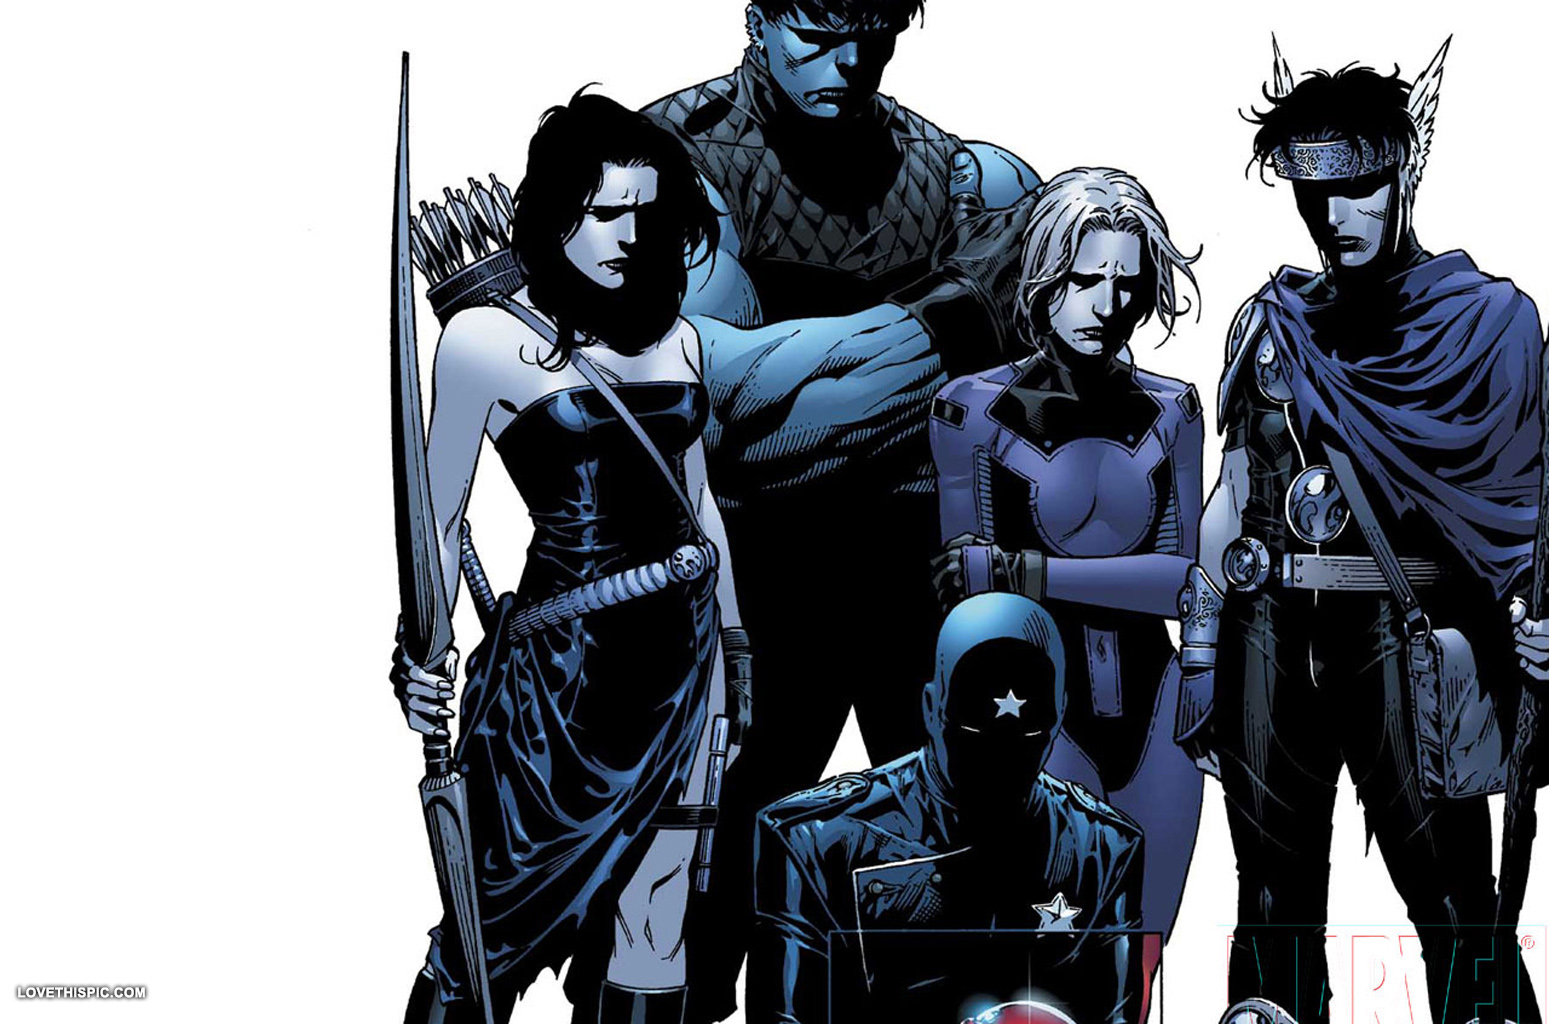 Young Avengers Pictures, Photos, And Images For Facebook